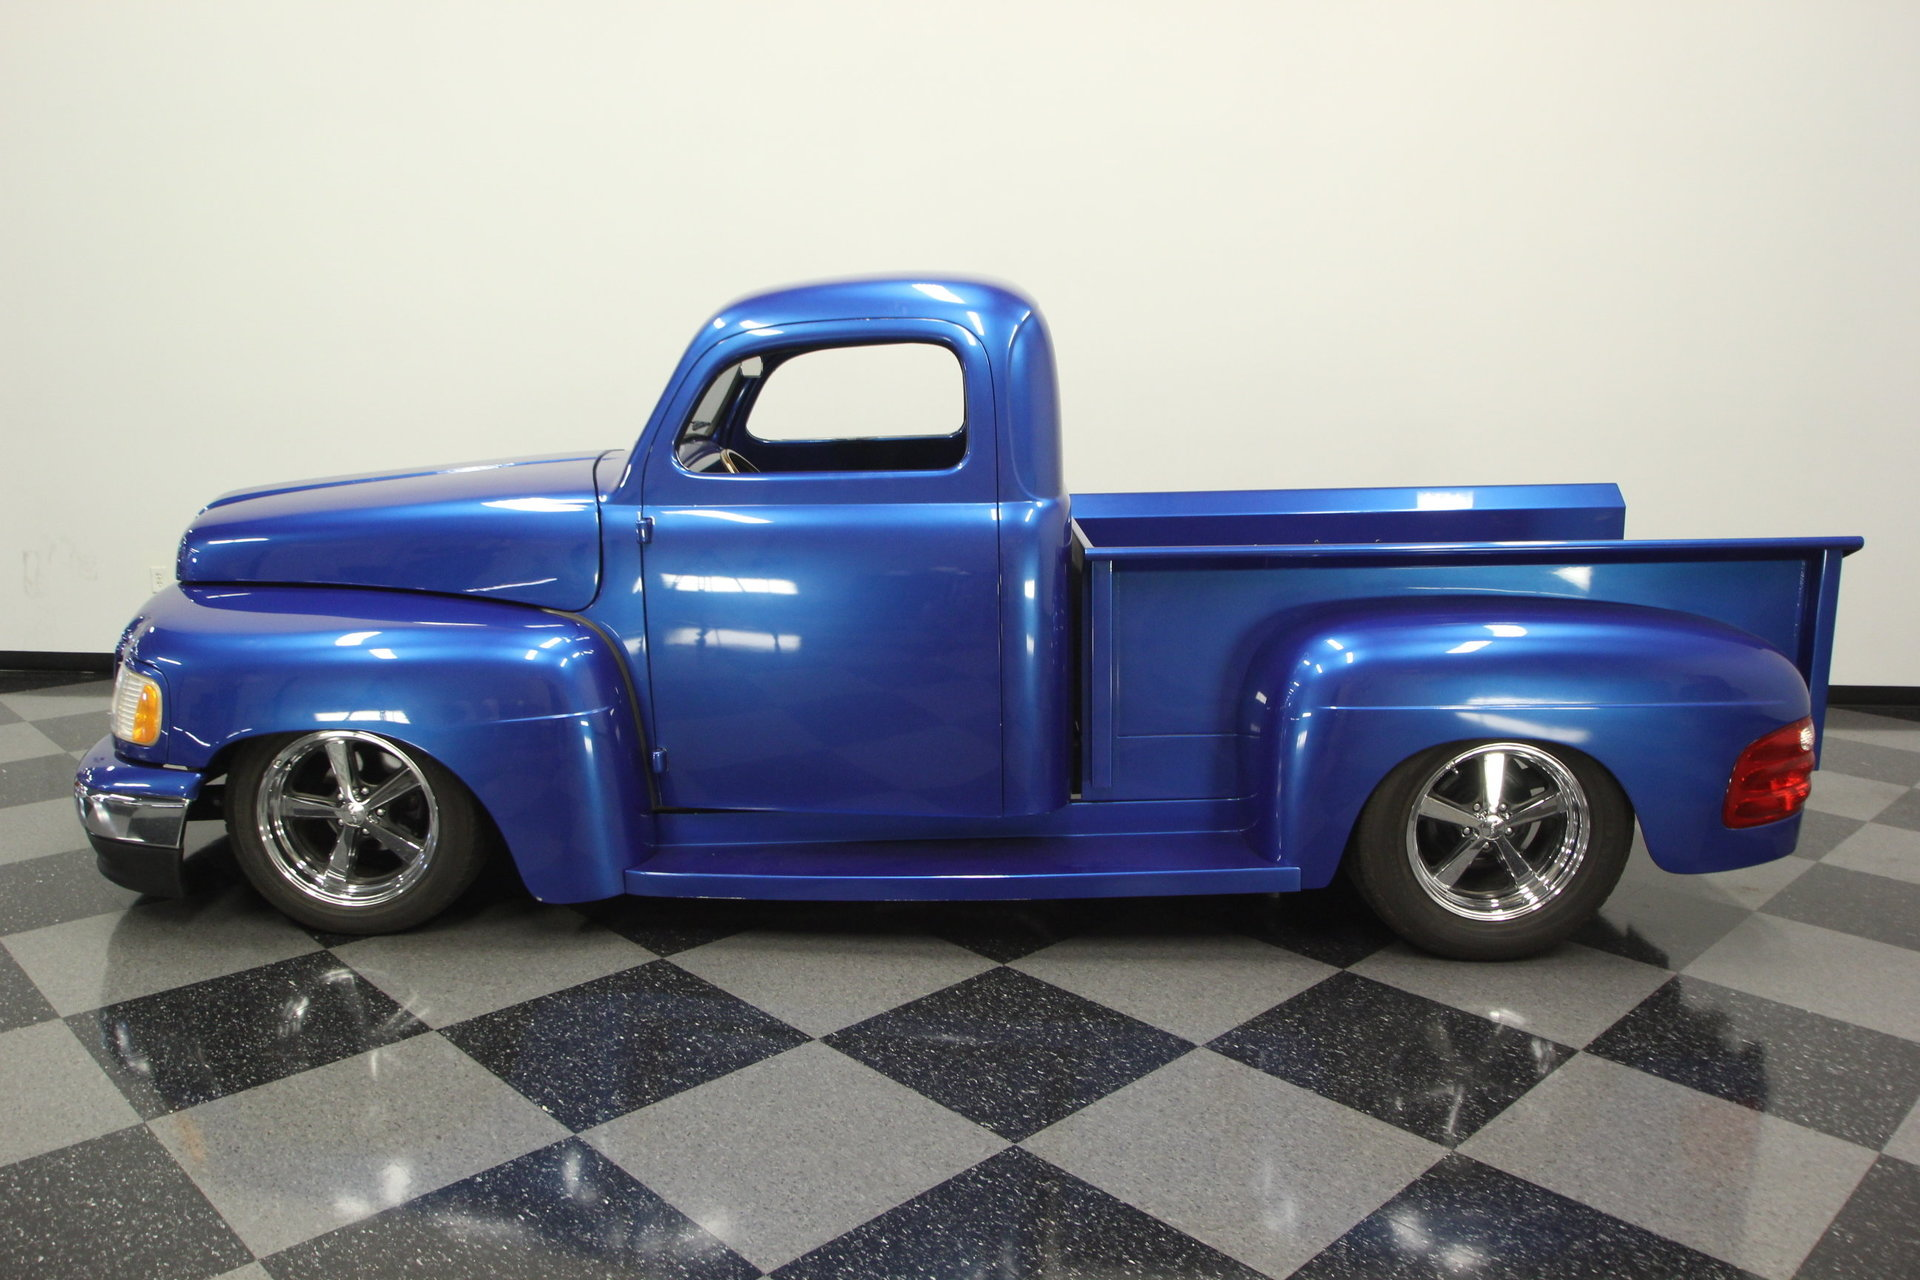 1948 Ford F 1 Streetside Classics The Nations Trusted Classic Pickup Truck Show More Photos